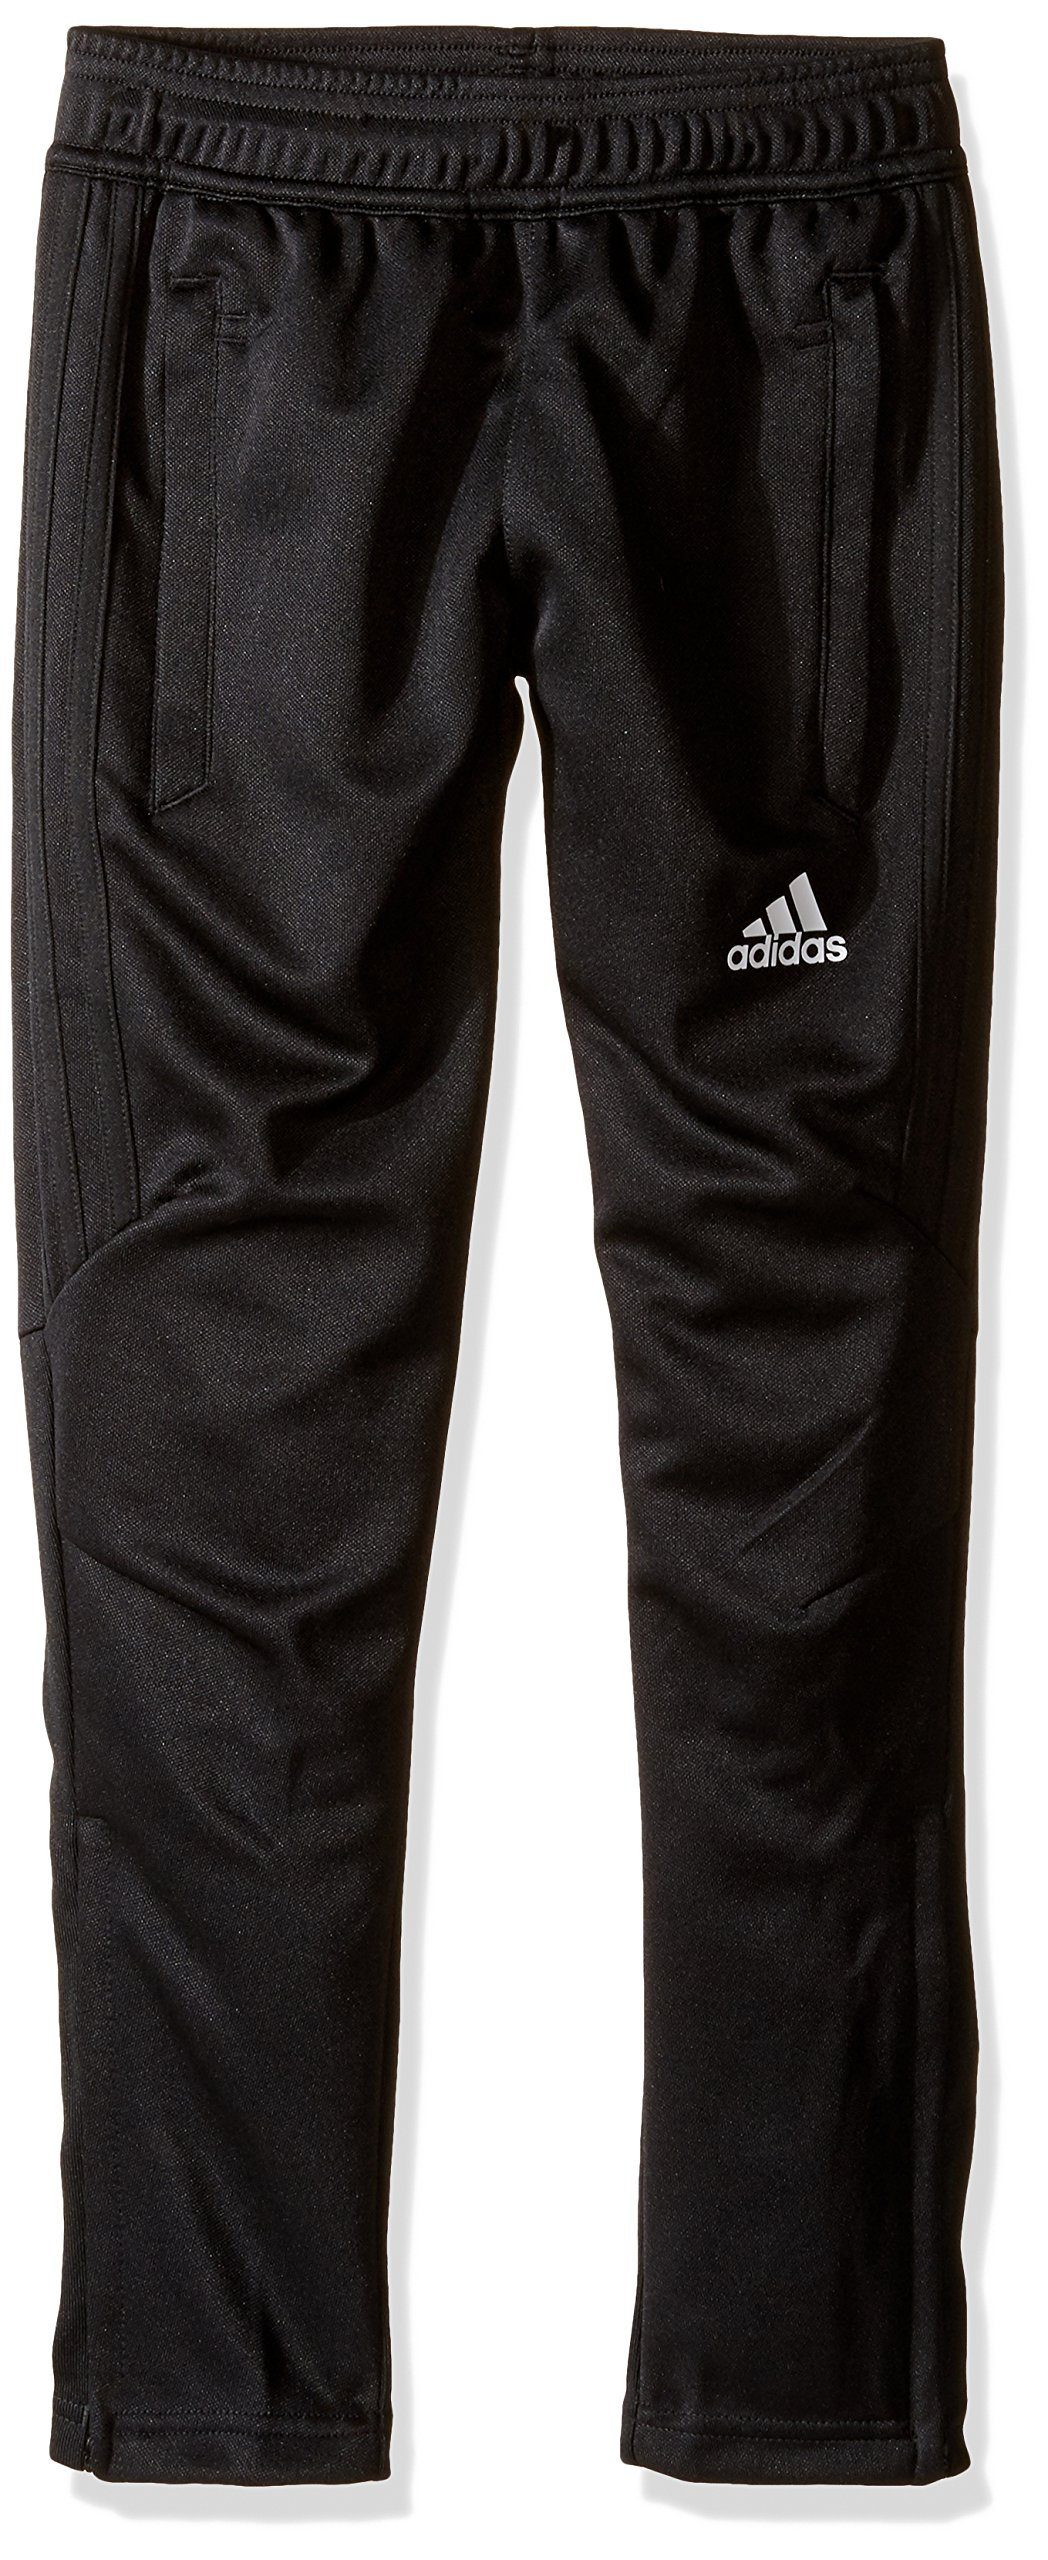 adidas Youth Soccer Tiro 17 Pants, XX-Small - Black/White